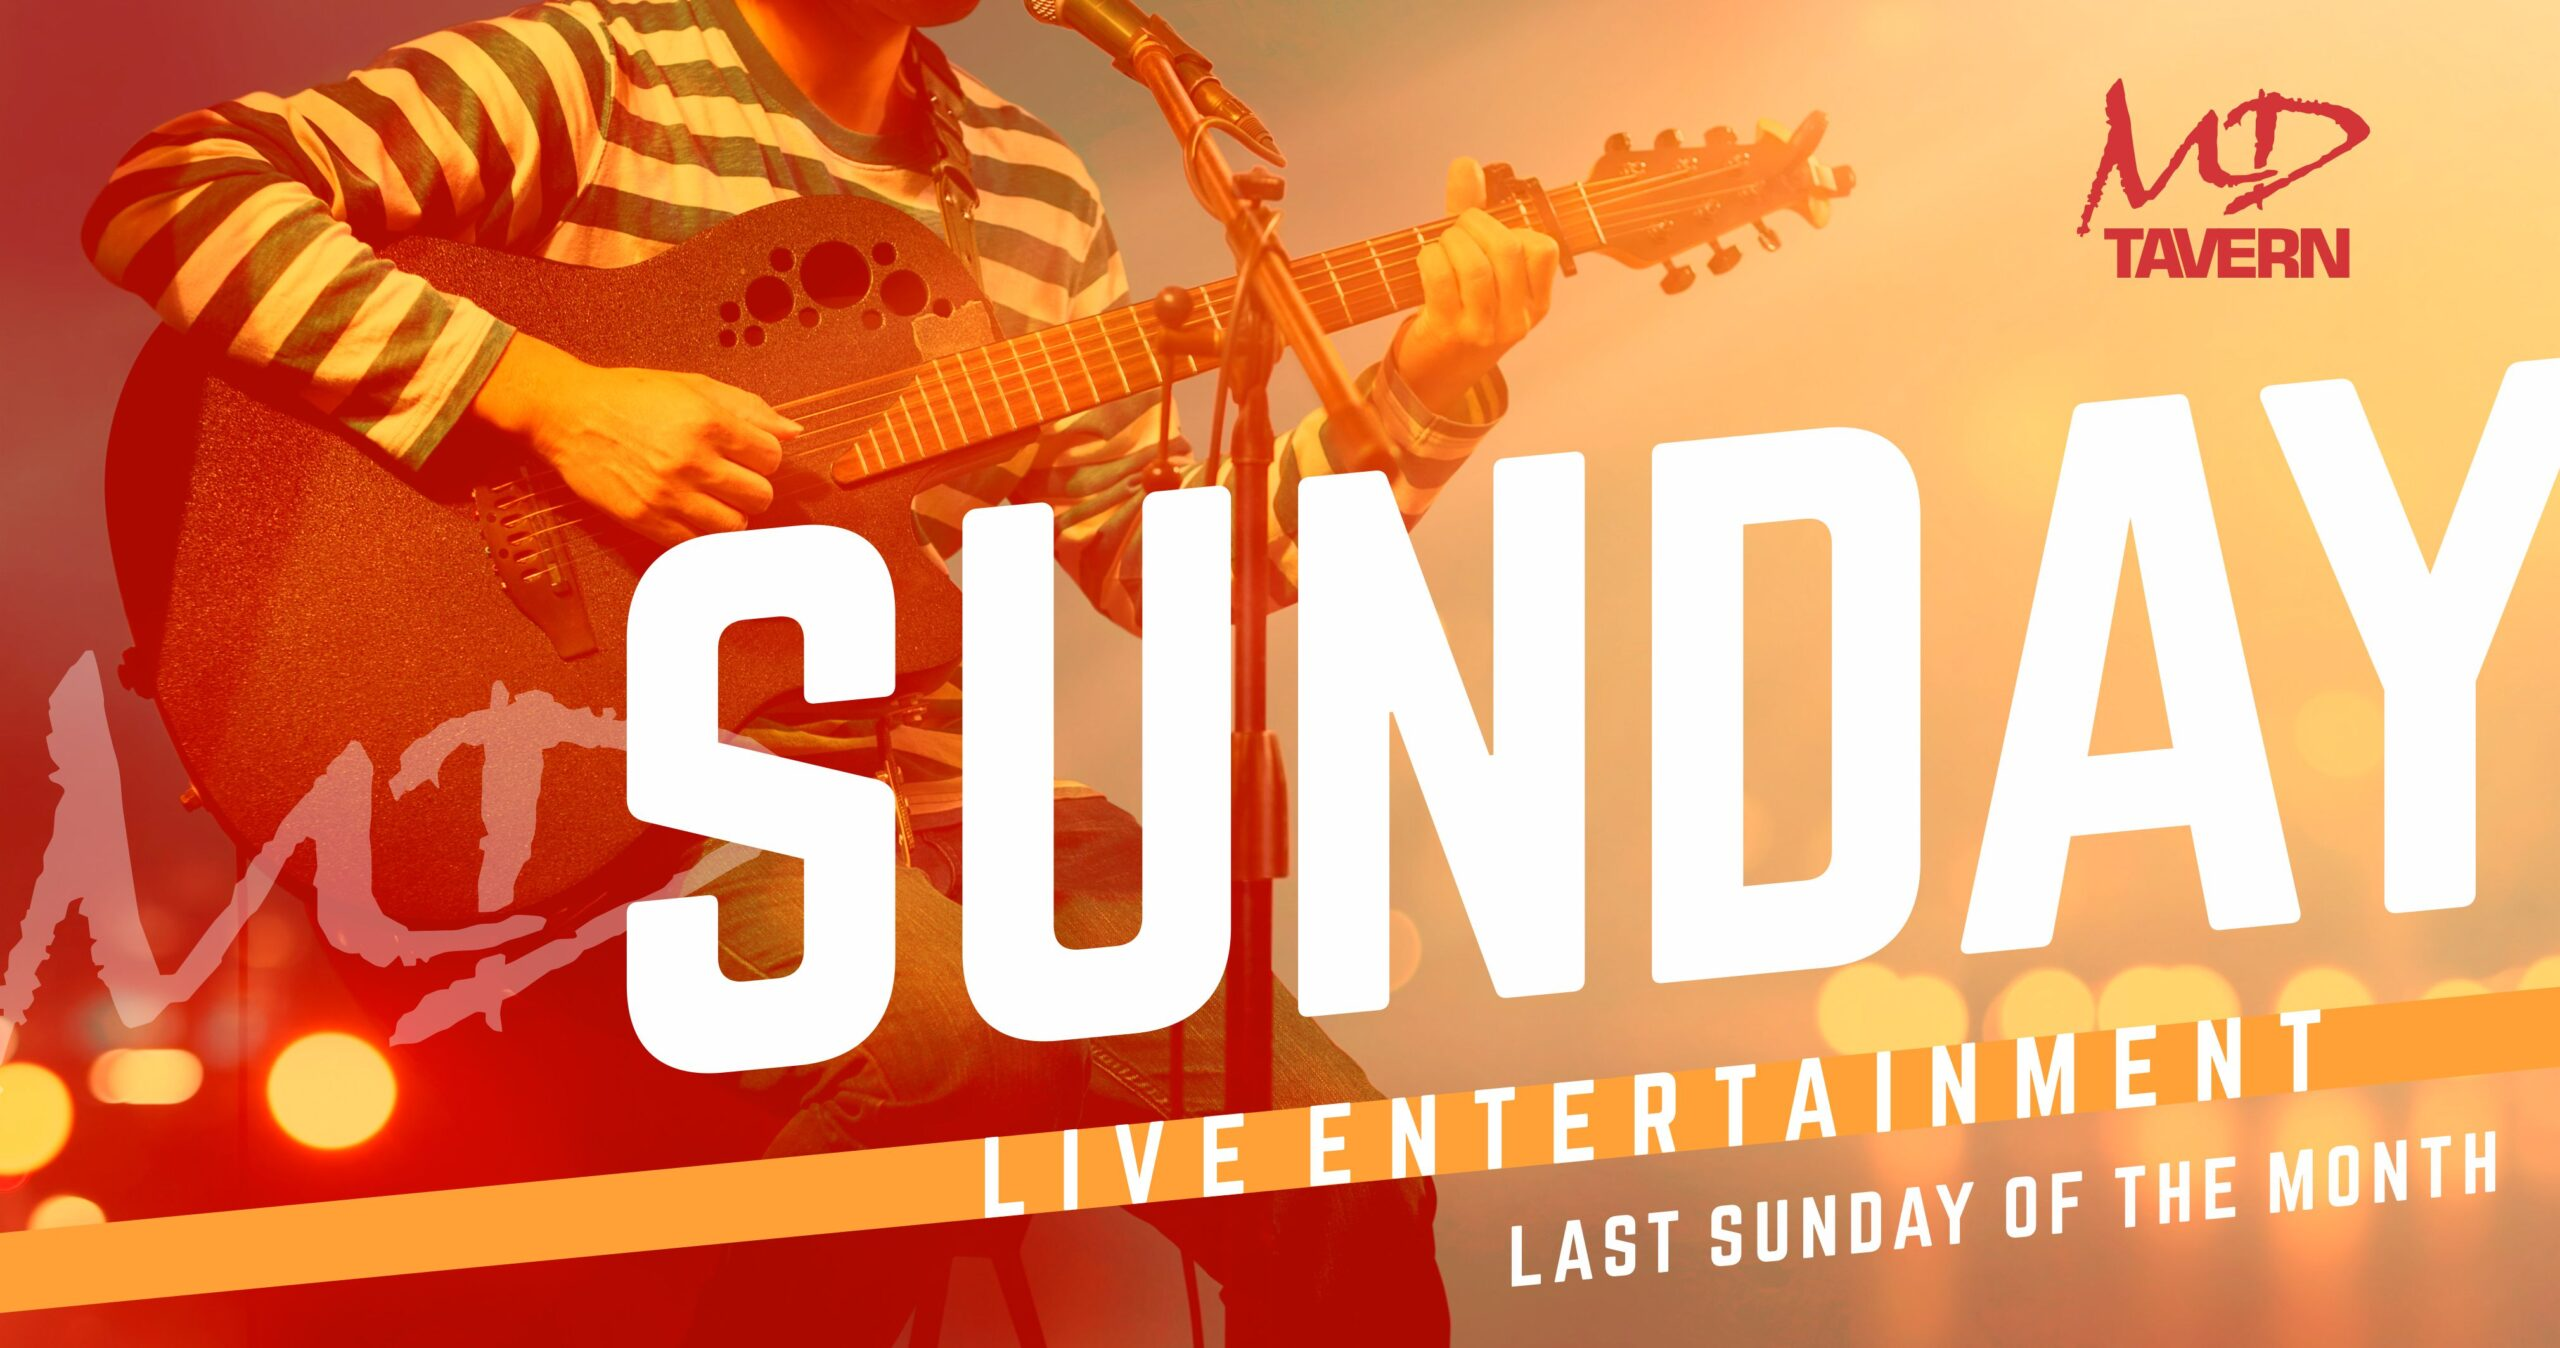 Sunday Live Entertainment MD Tavern